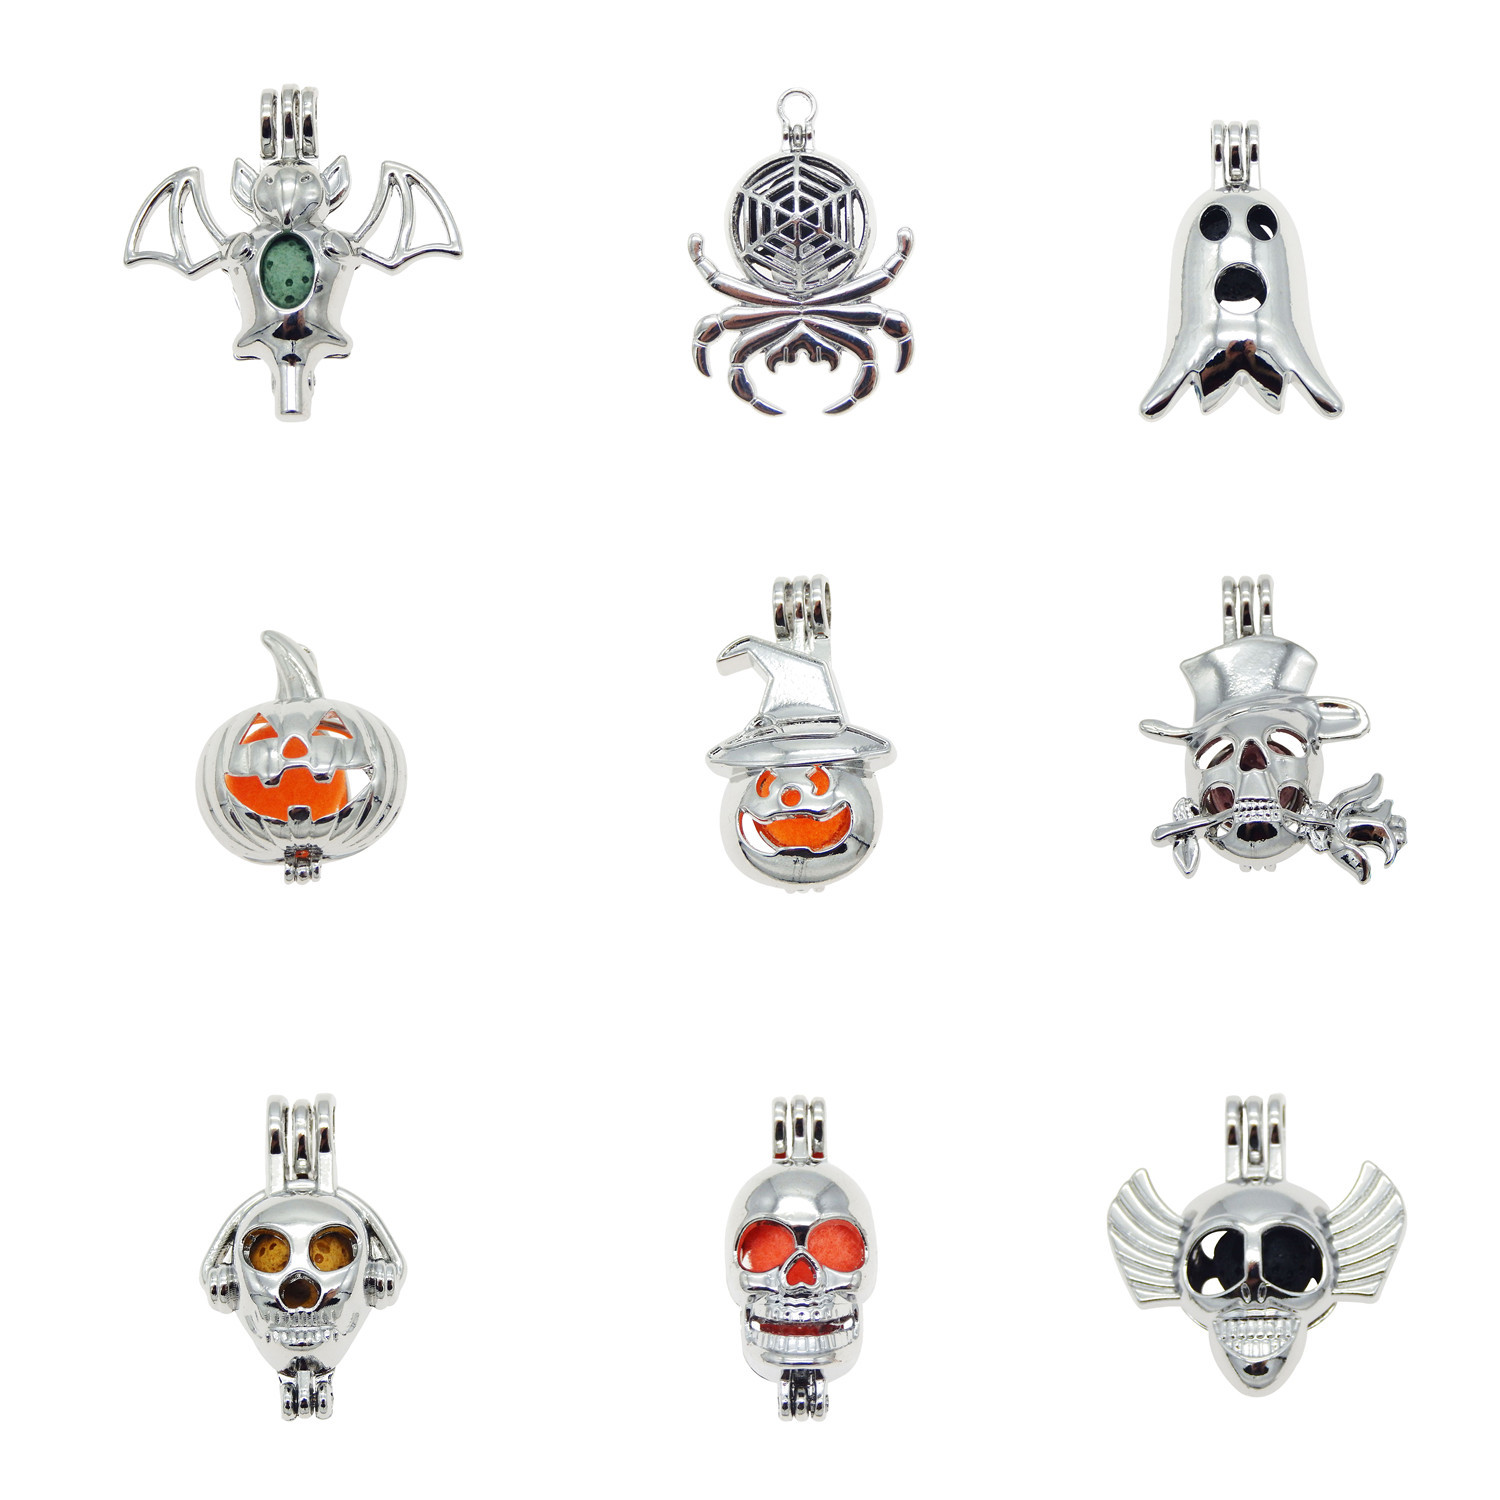 40pcs Silver Tone Alloy Dumbbell Charms Pendant Crafts Jewelry Making 51247